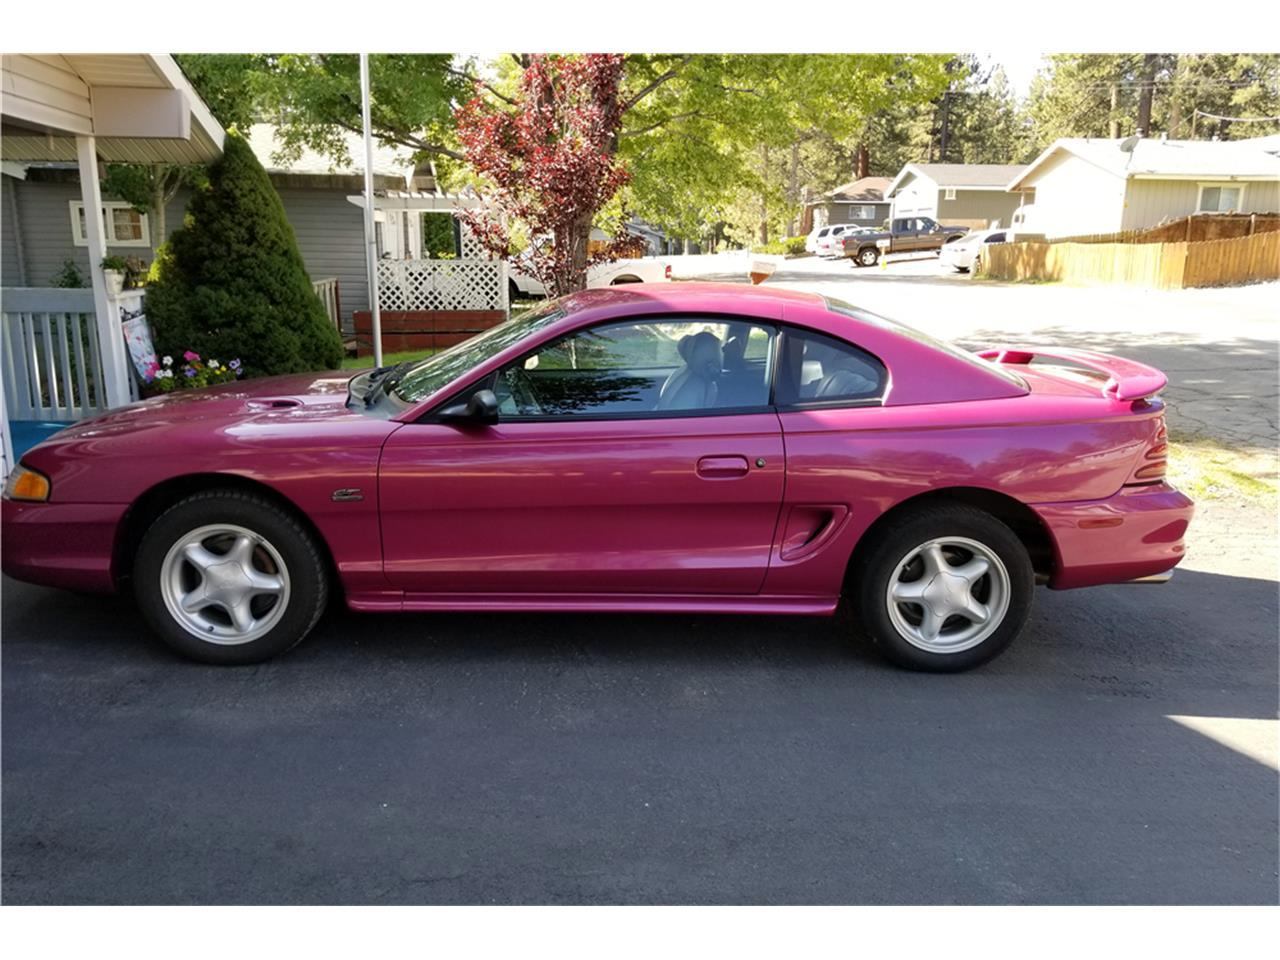 Large picture of 94 mustang gt ofqb